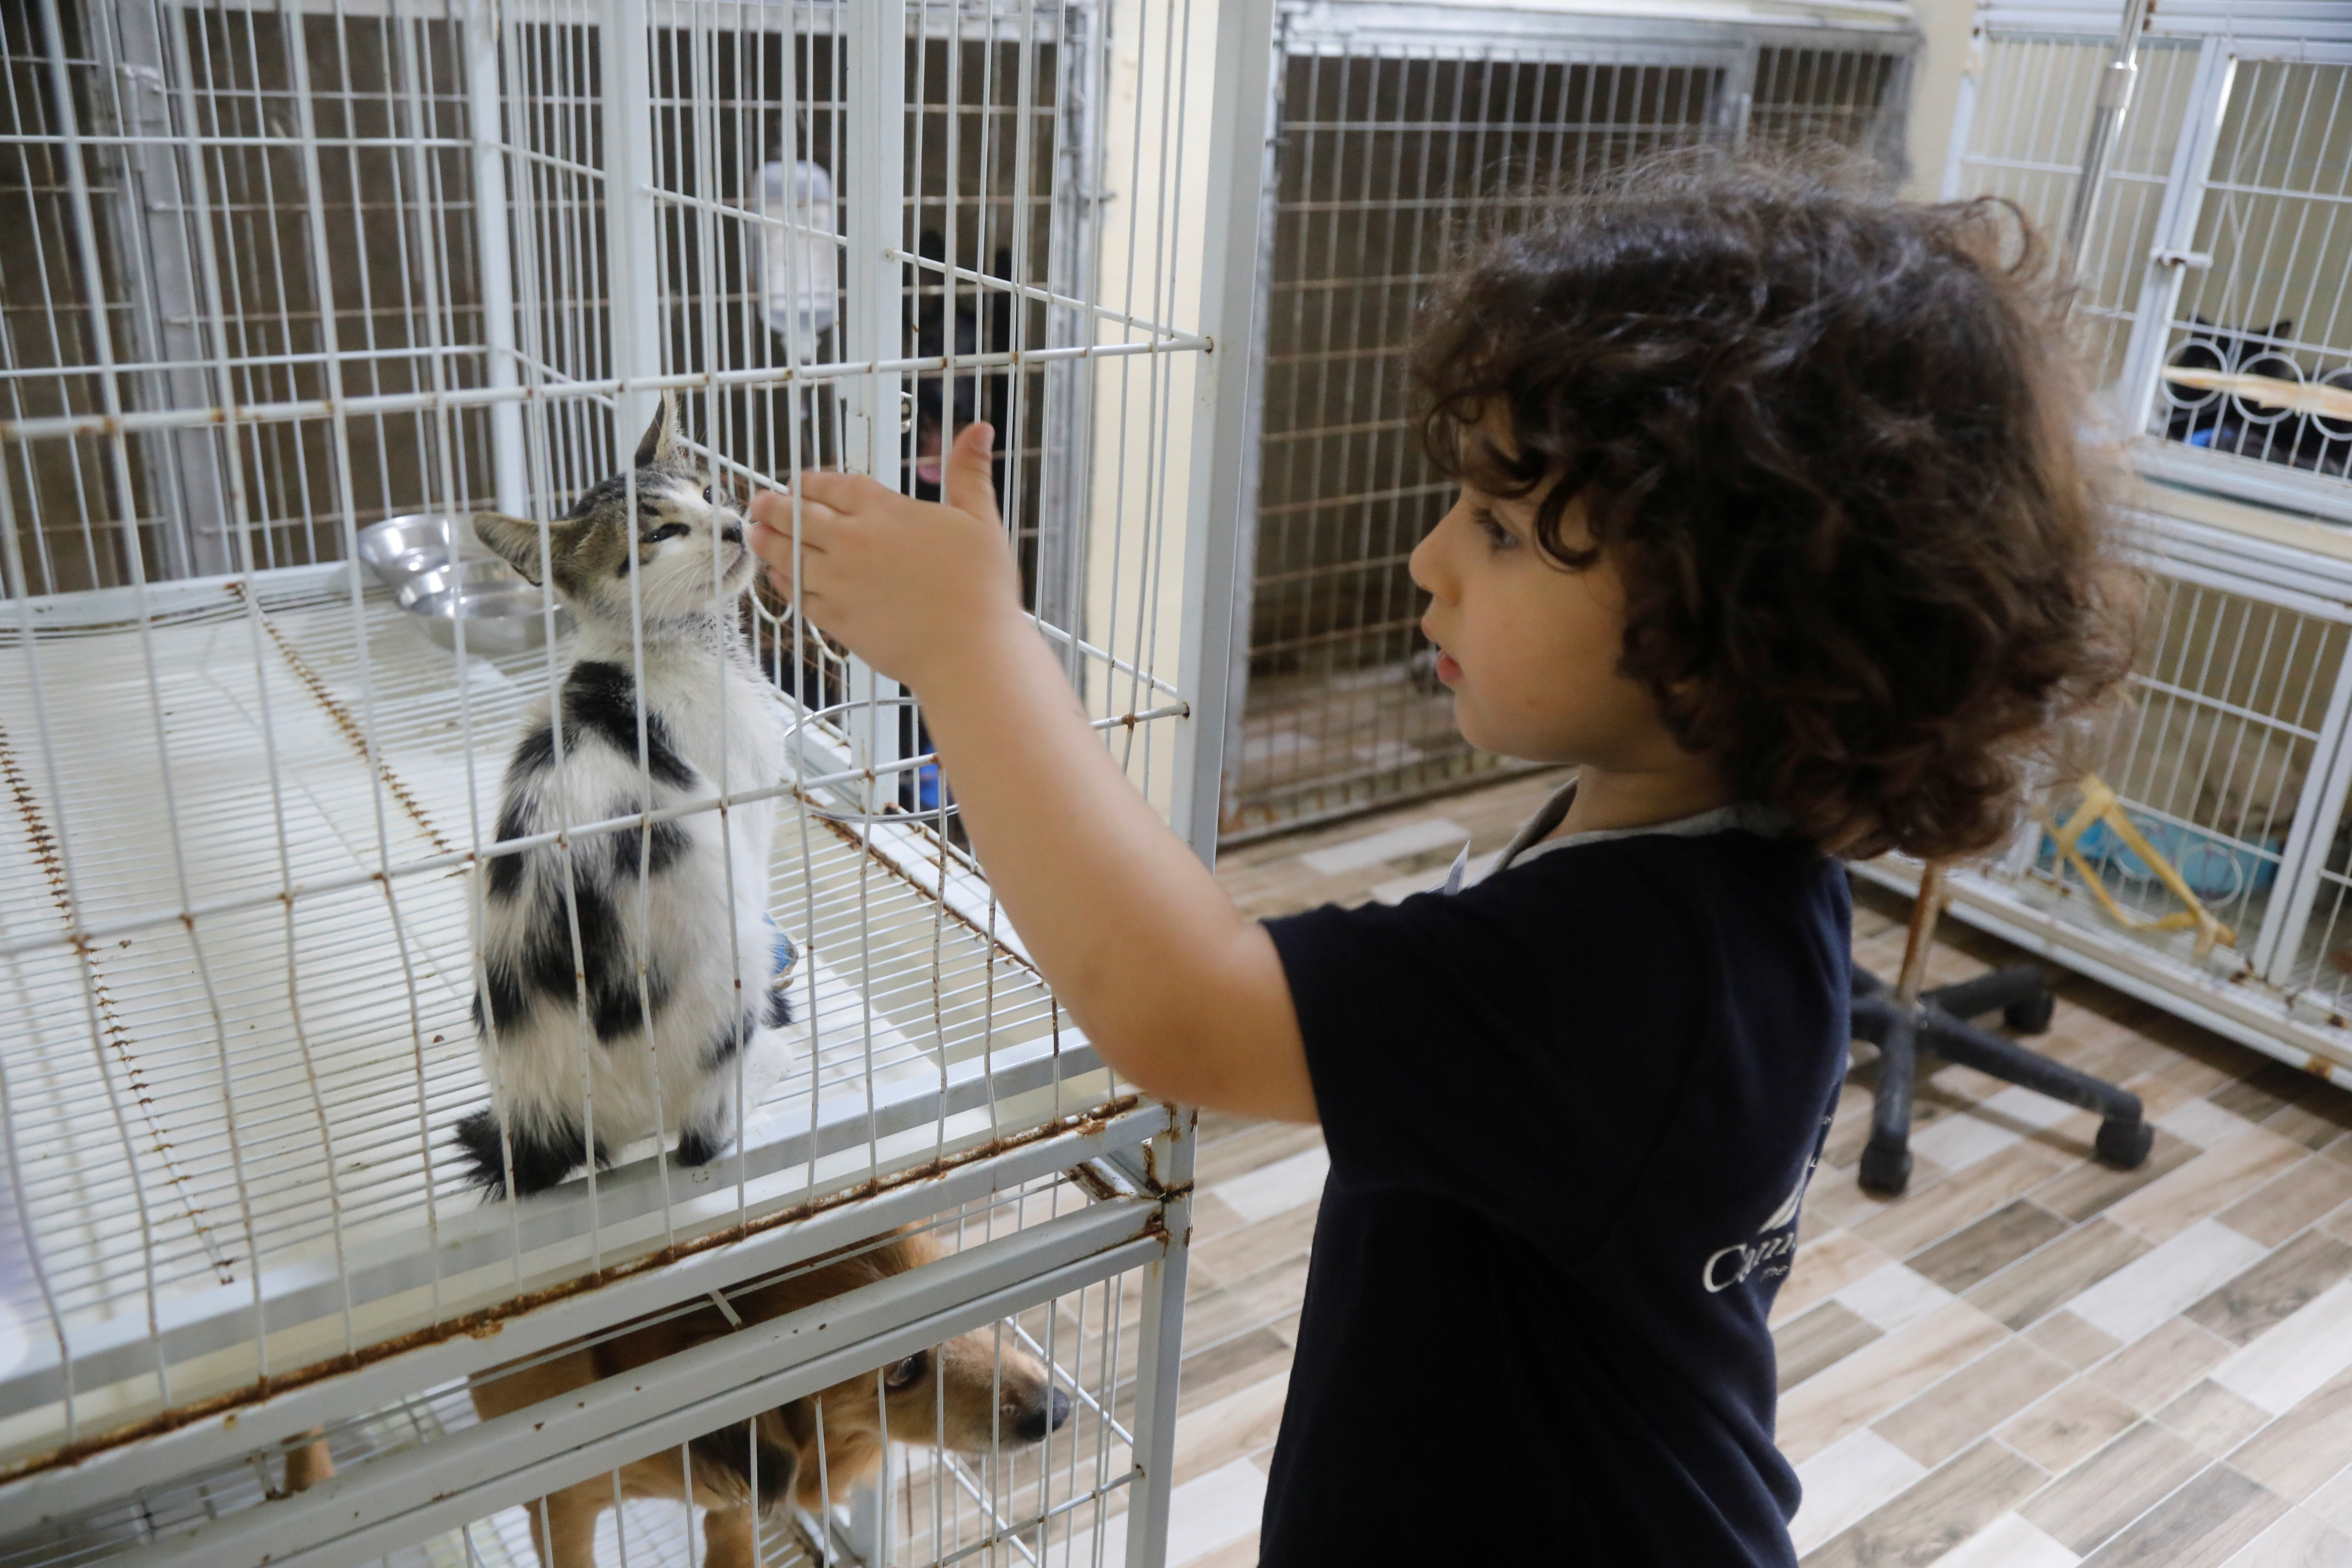 A Palestinian child pets a cat at Royal Care Vet Clinic that offers animals medical and grooming care, in Nablus, the Israeli-occupied West Bank, September 7, 2021. REUTERS/Raneen Sawafta